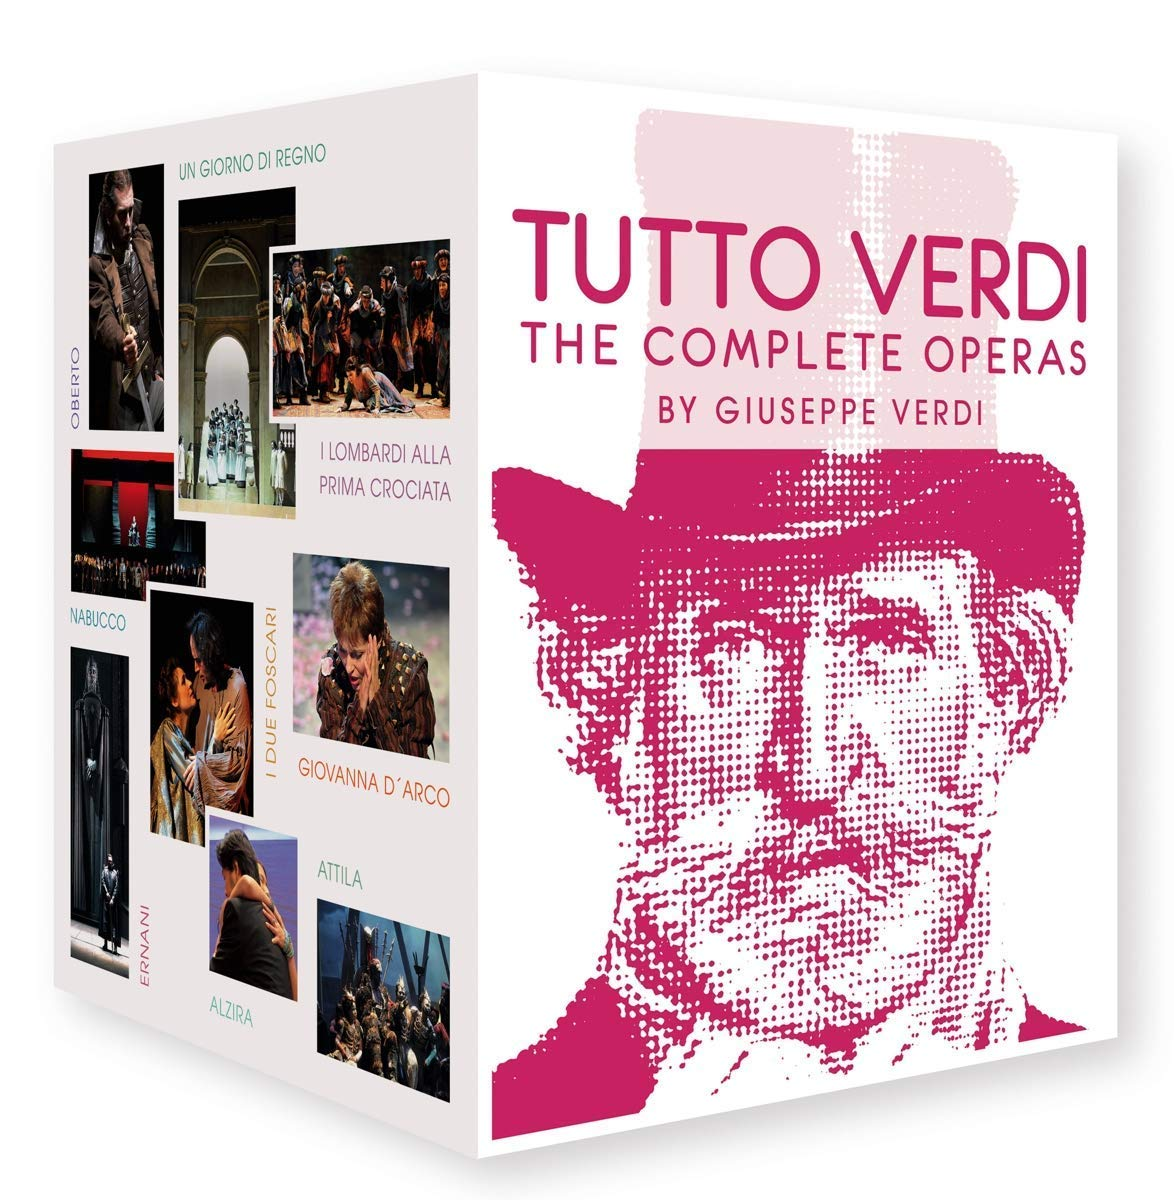 Verdi, G.: Tutto Verdi - The Complete Operas (27 Disc Box Set) (Blu-ray, HD) [Blu-ray]